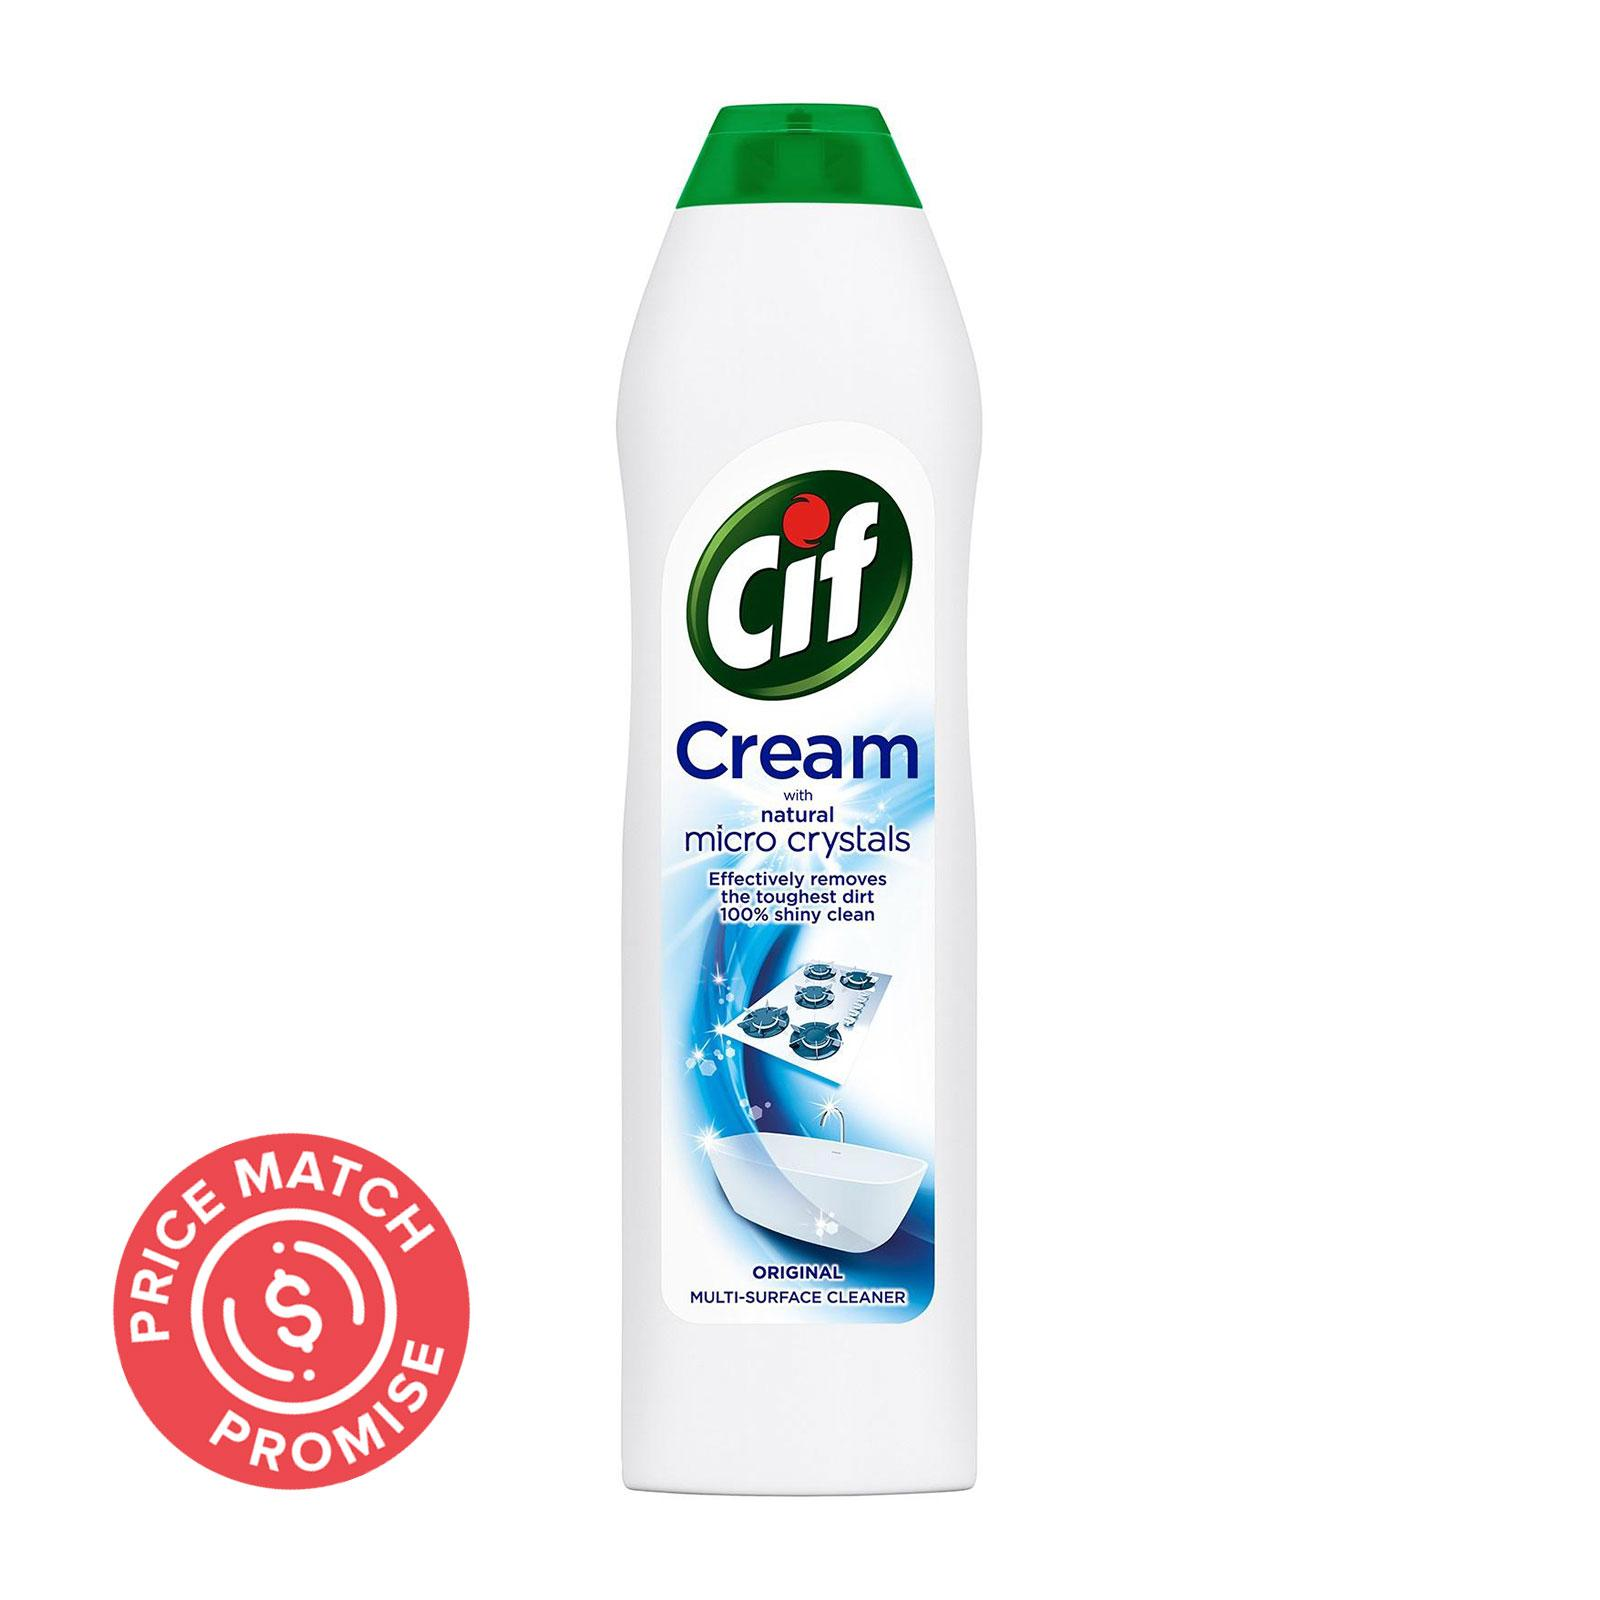 Cif Cream with Micro Crystals Original Surface Cleaner